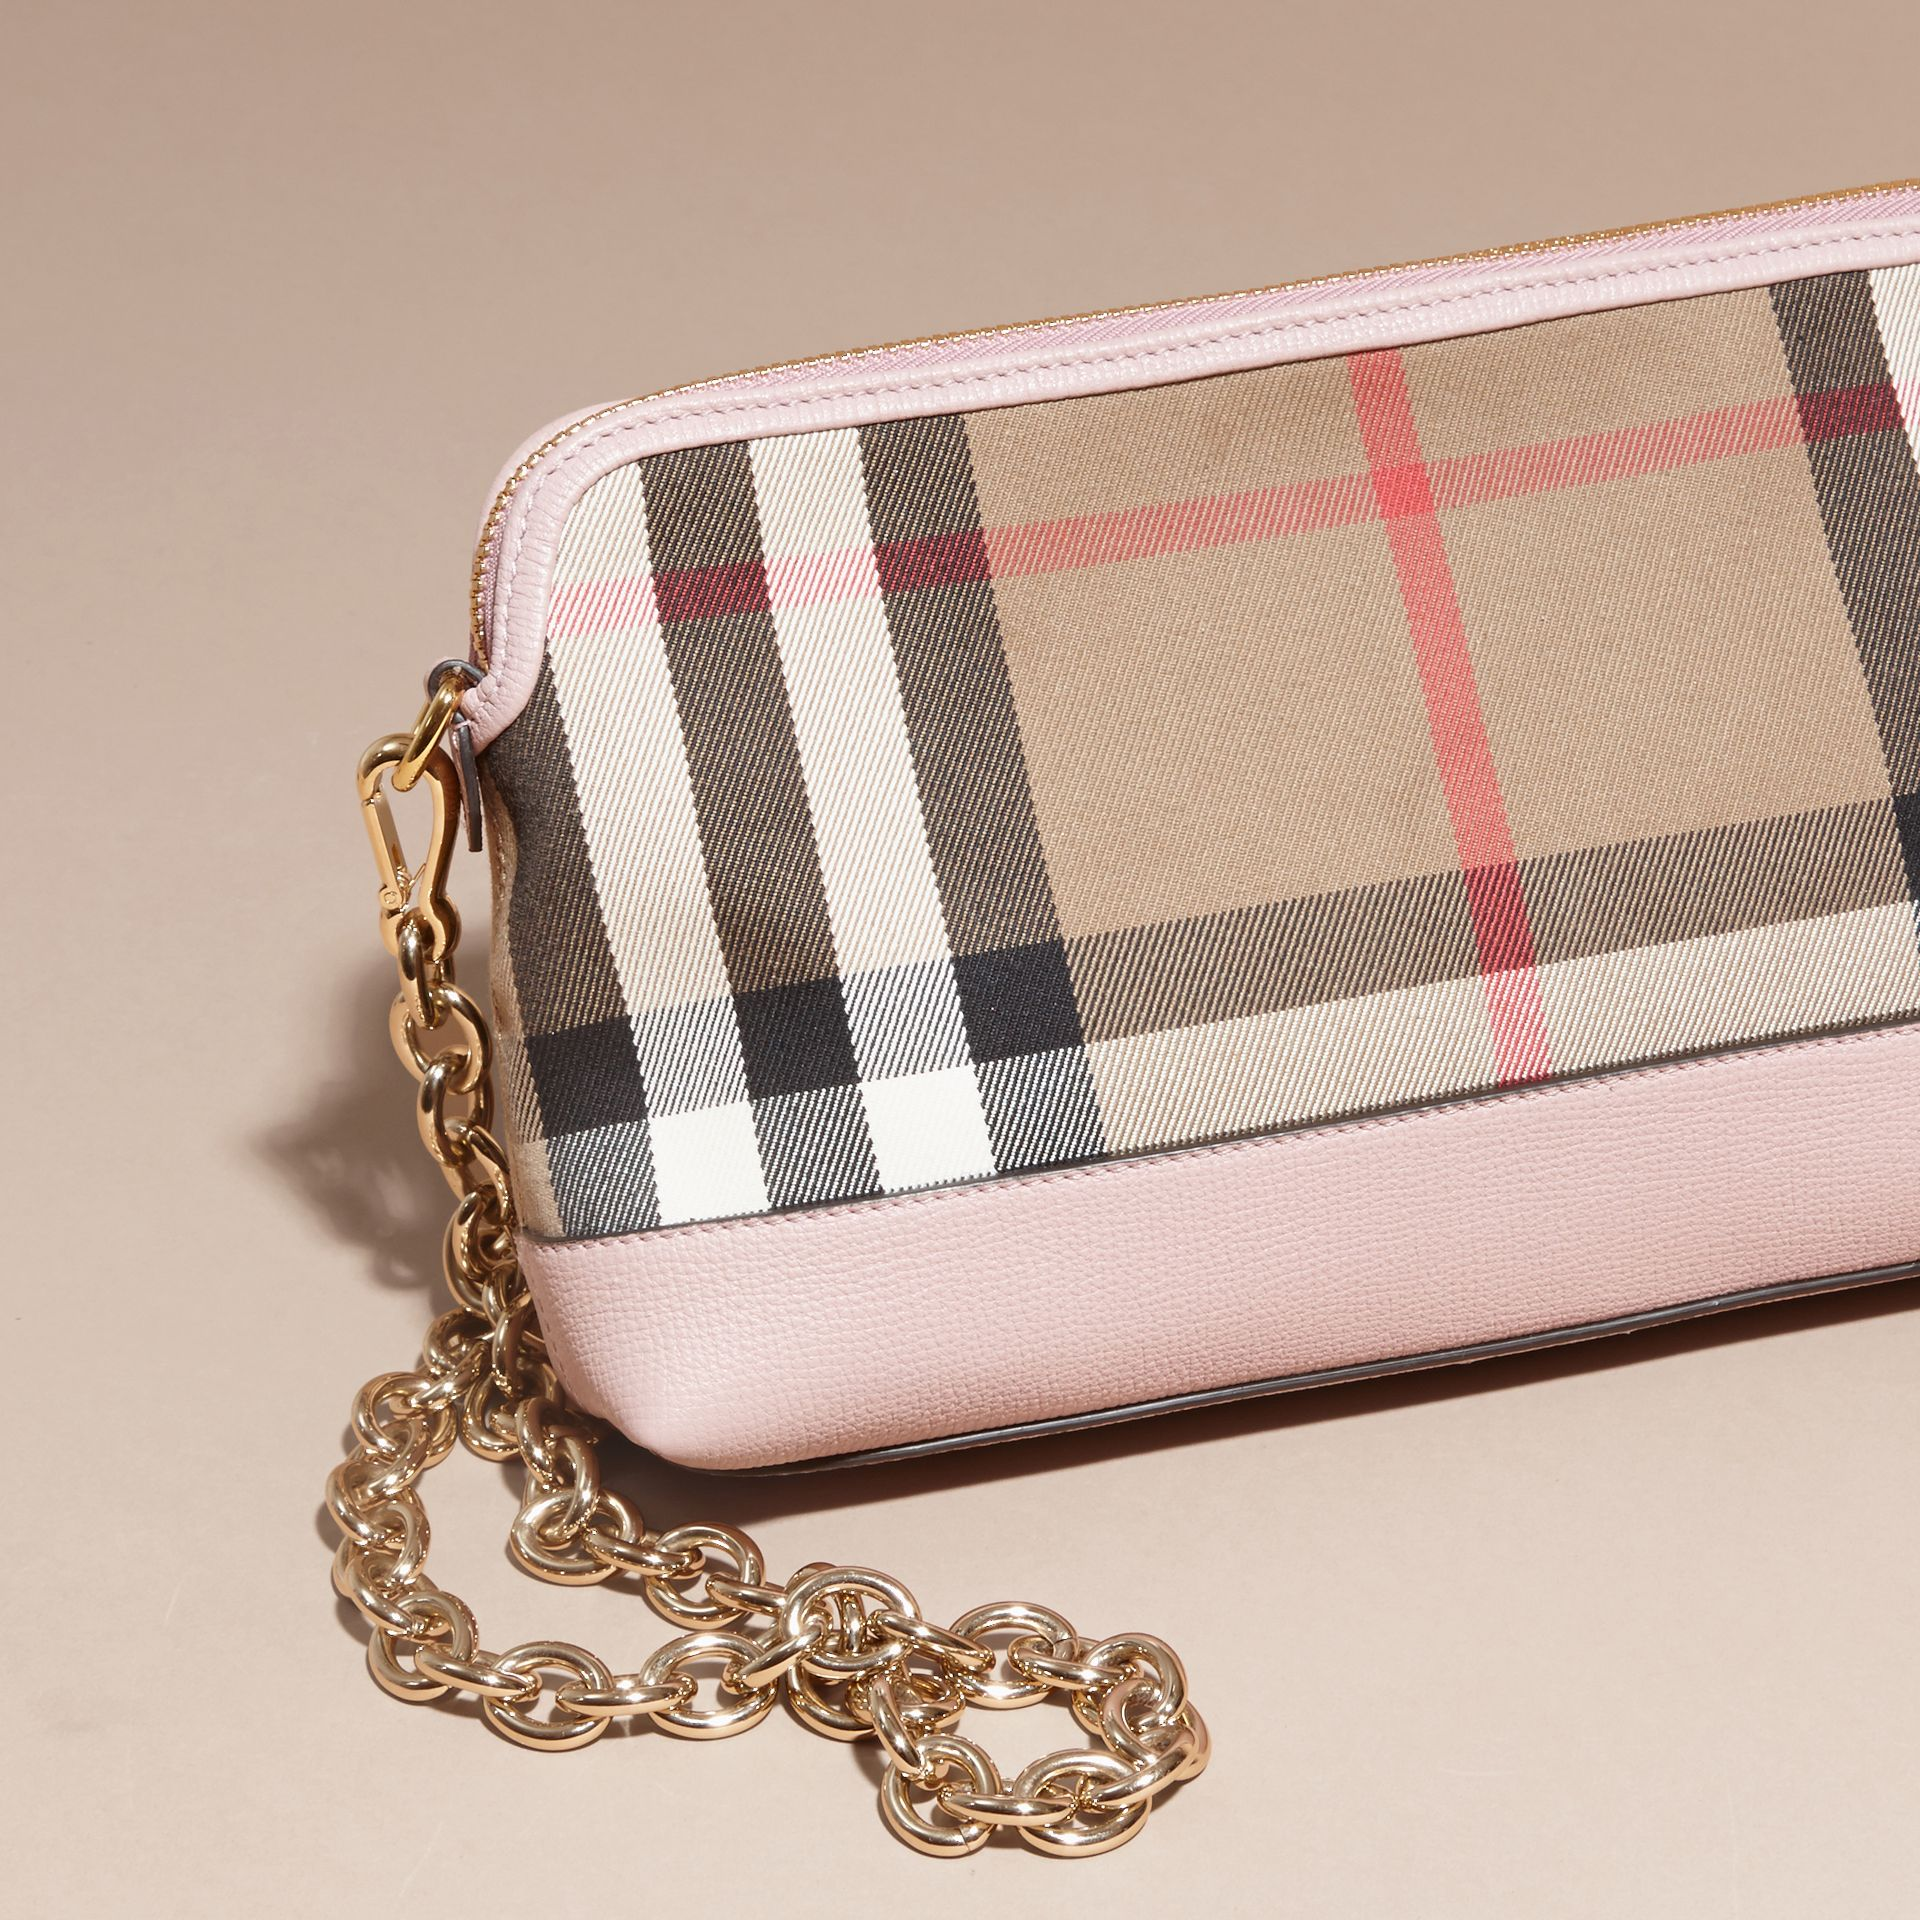 House Check and Leather Clutch Bag in Pale Orchid - Women | Burberry Australia - gallery image 5